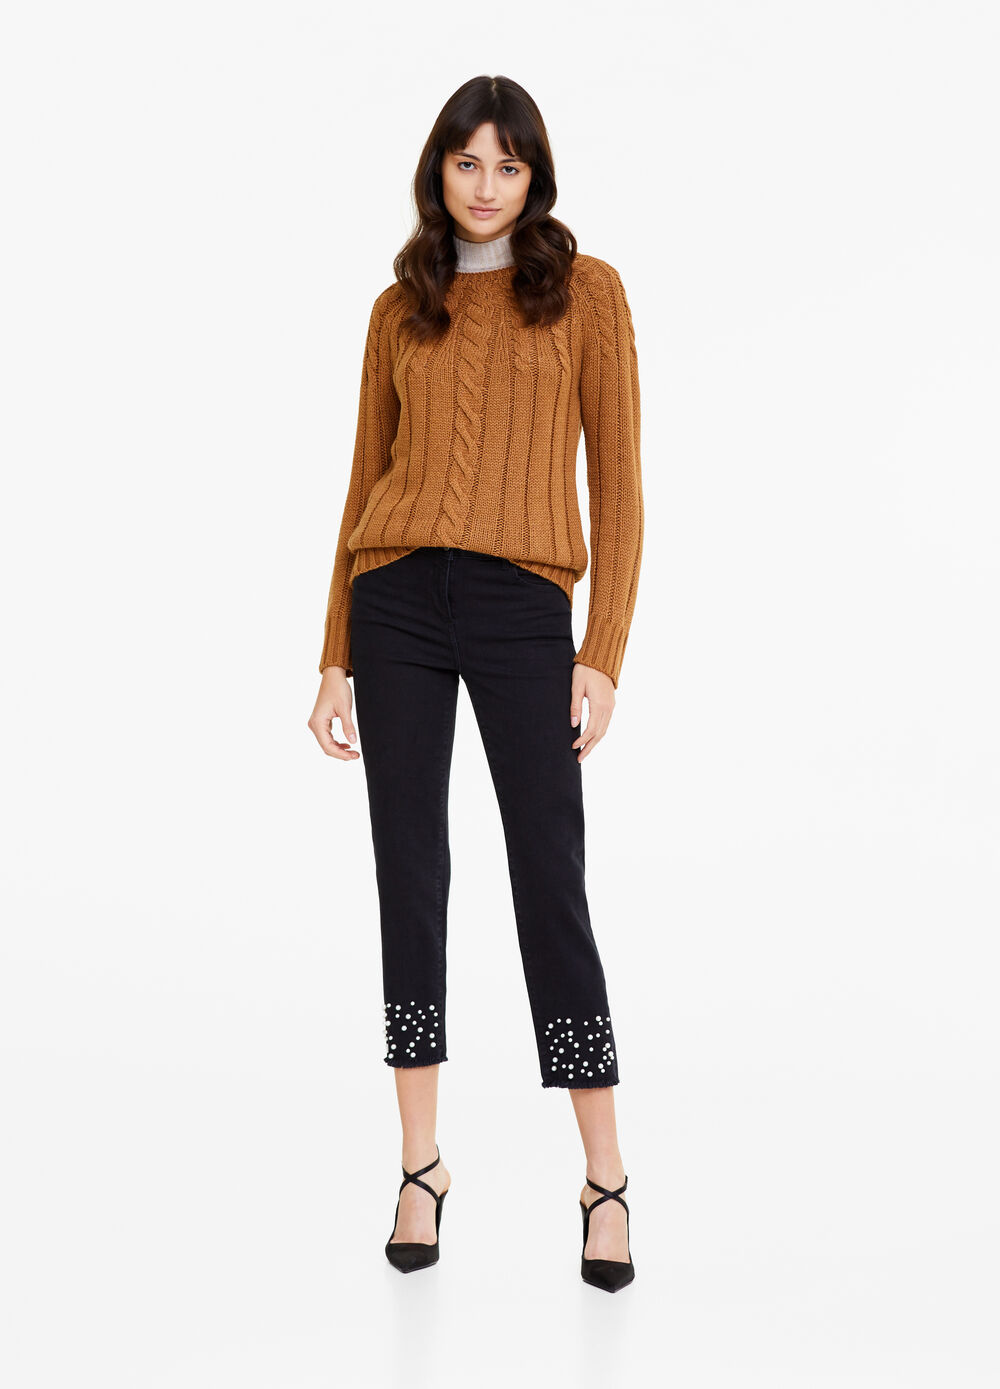 Openwork knitted pullover